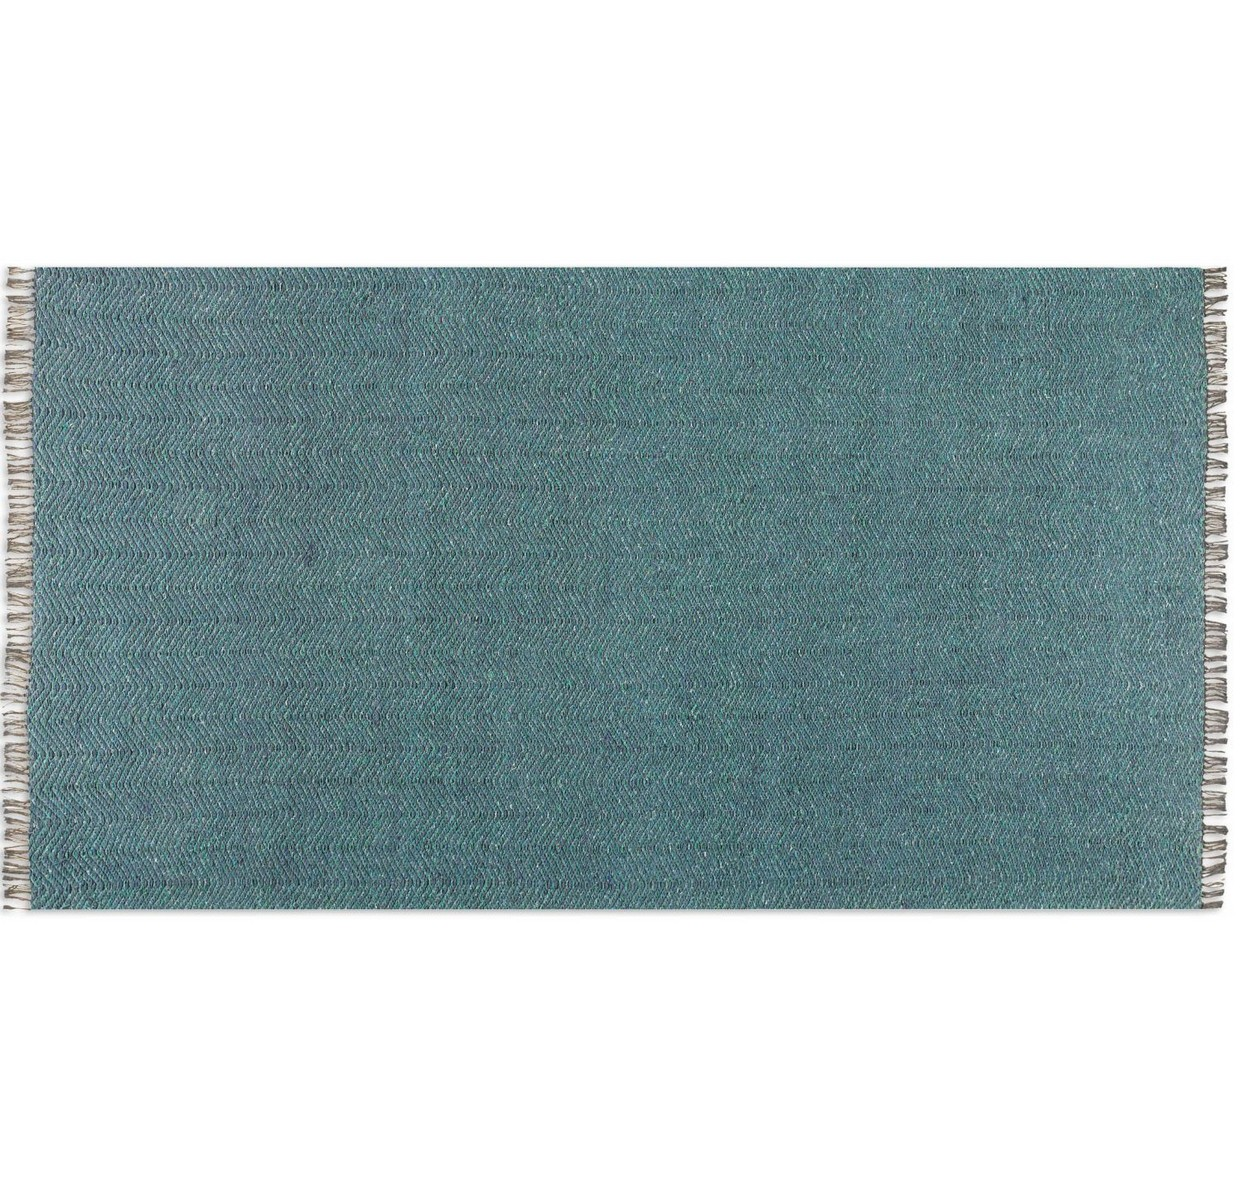 Uttermost Cascadia 9 X 12 Cotton Rug